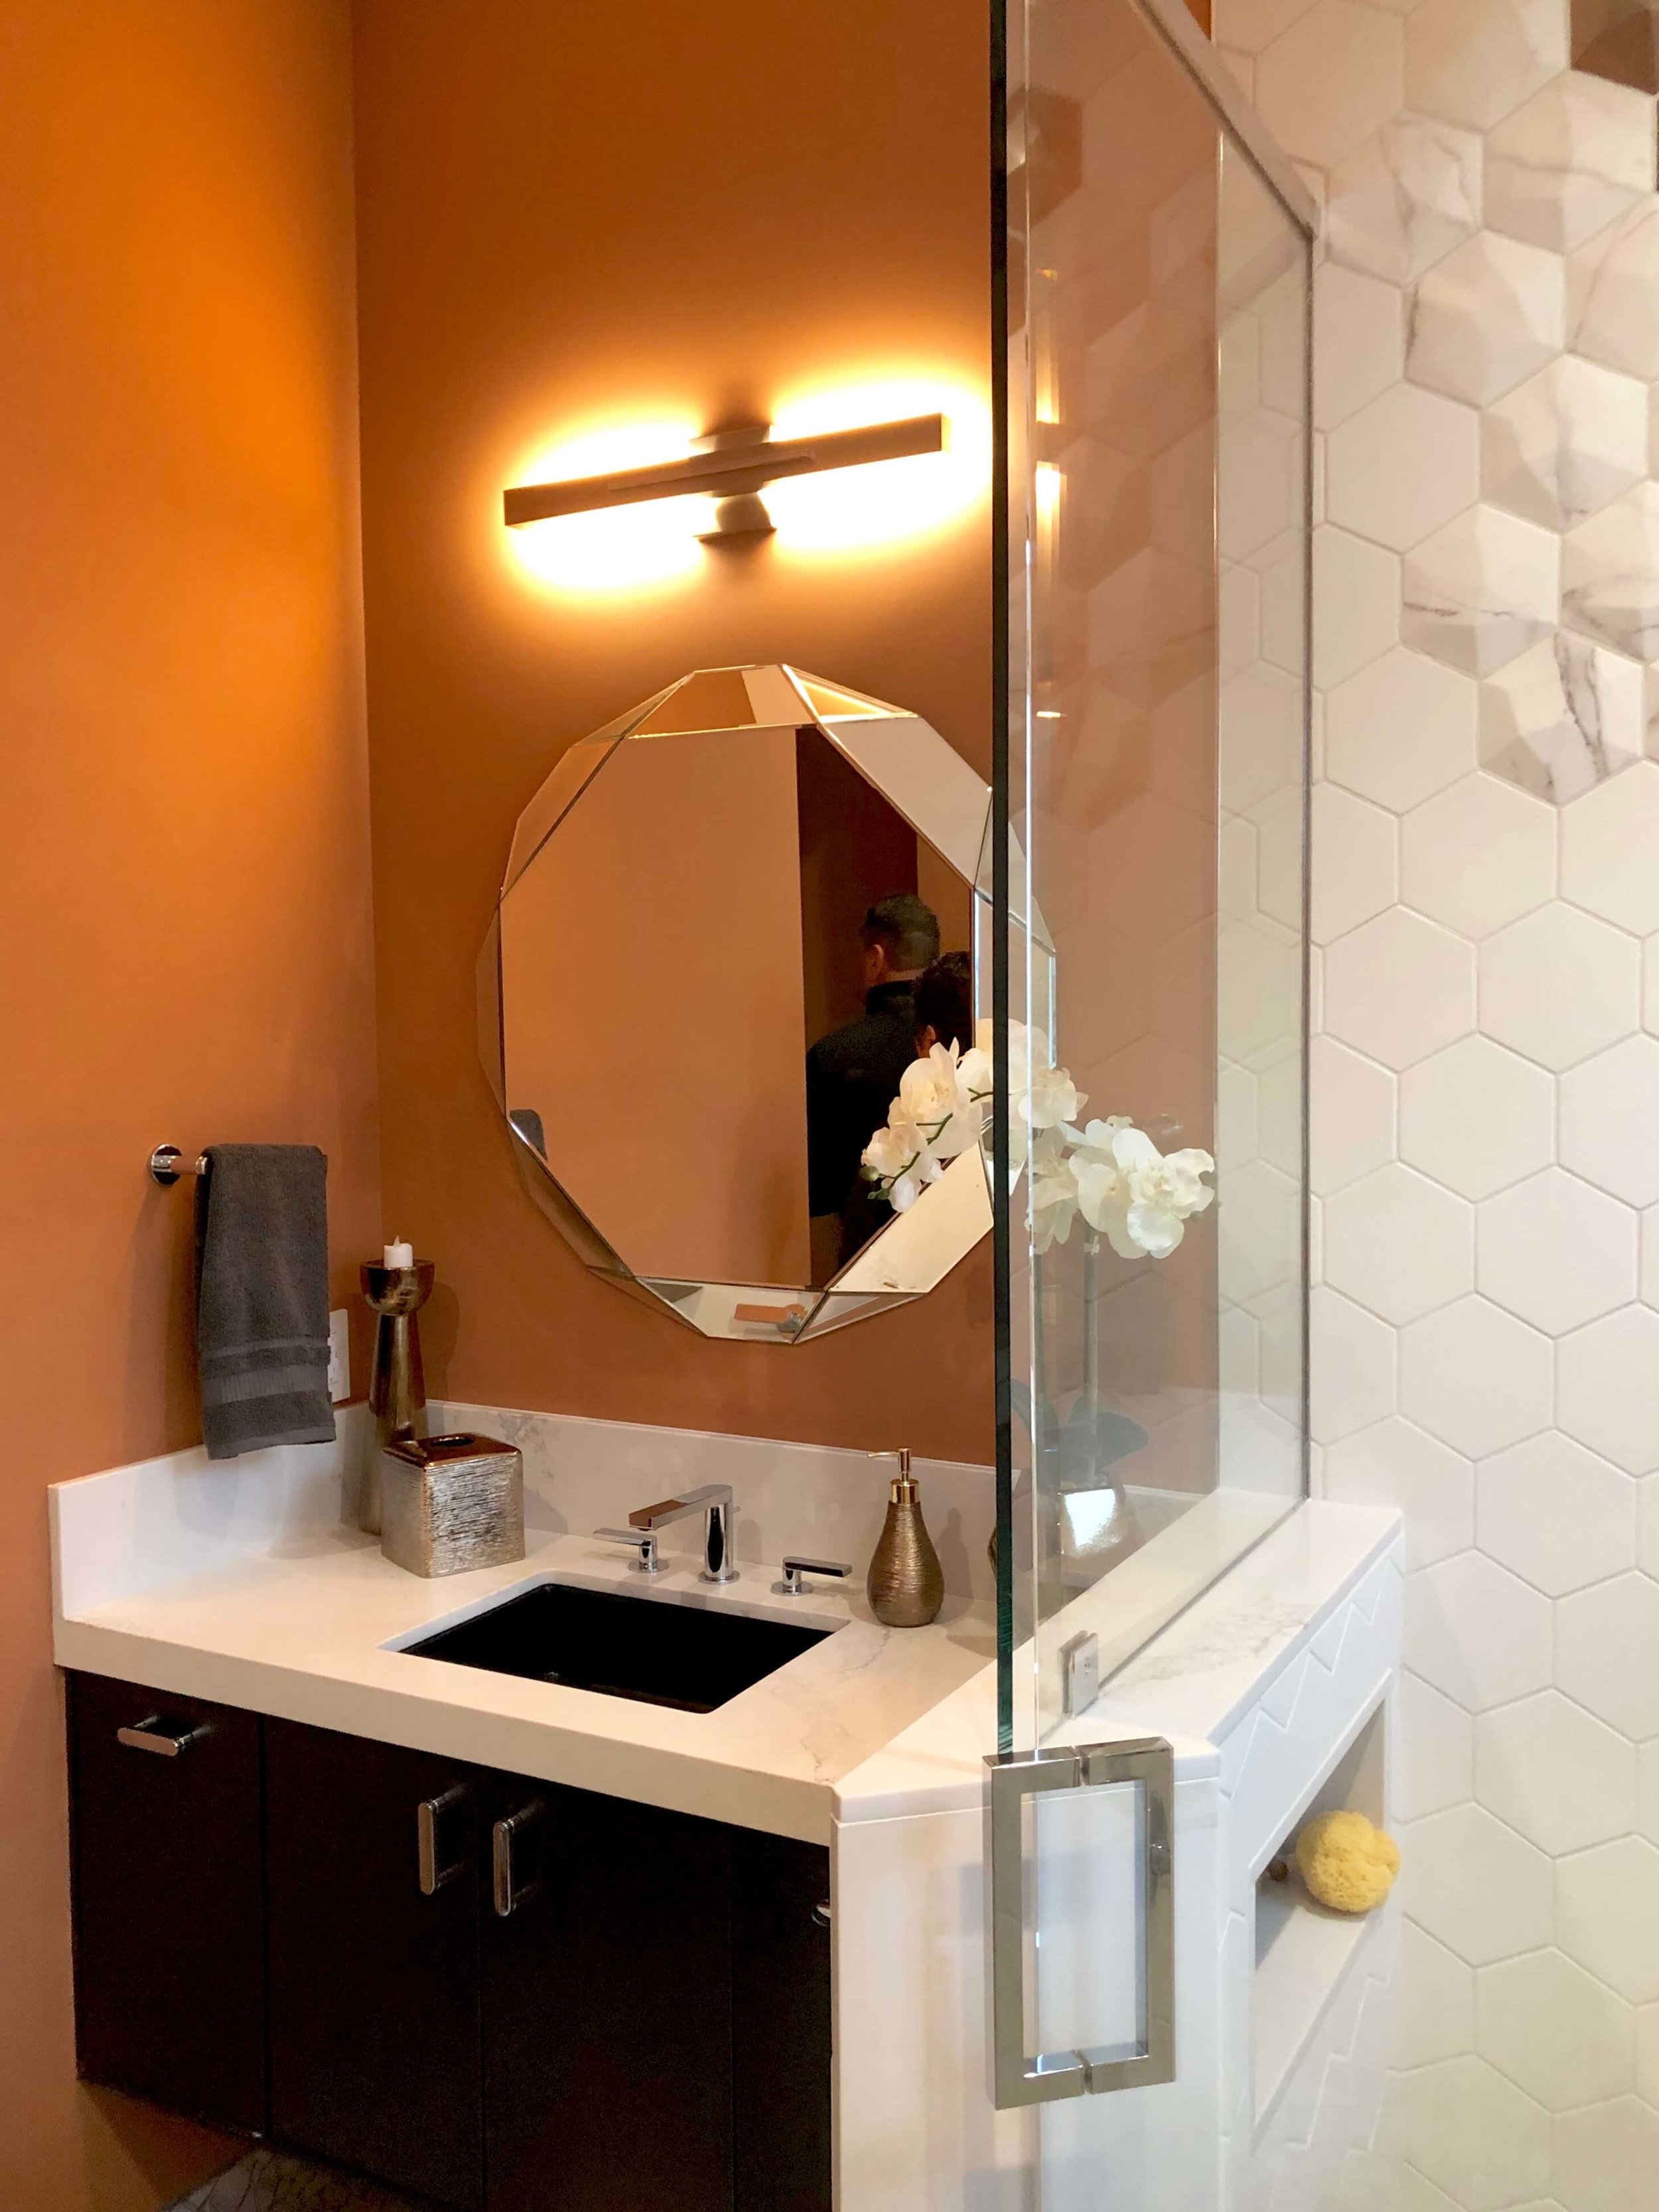 Guest Bathroom, The New American Home Tour 2019 | Designed and built by Sun West Custom Homes  #contemporaryhome #bathroom